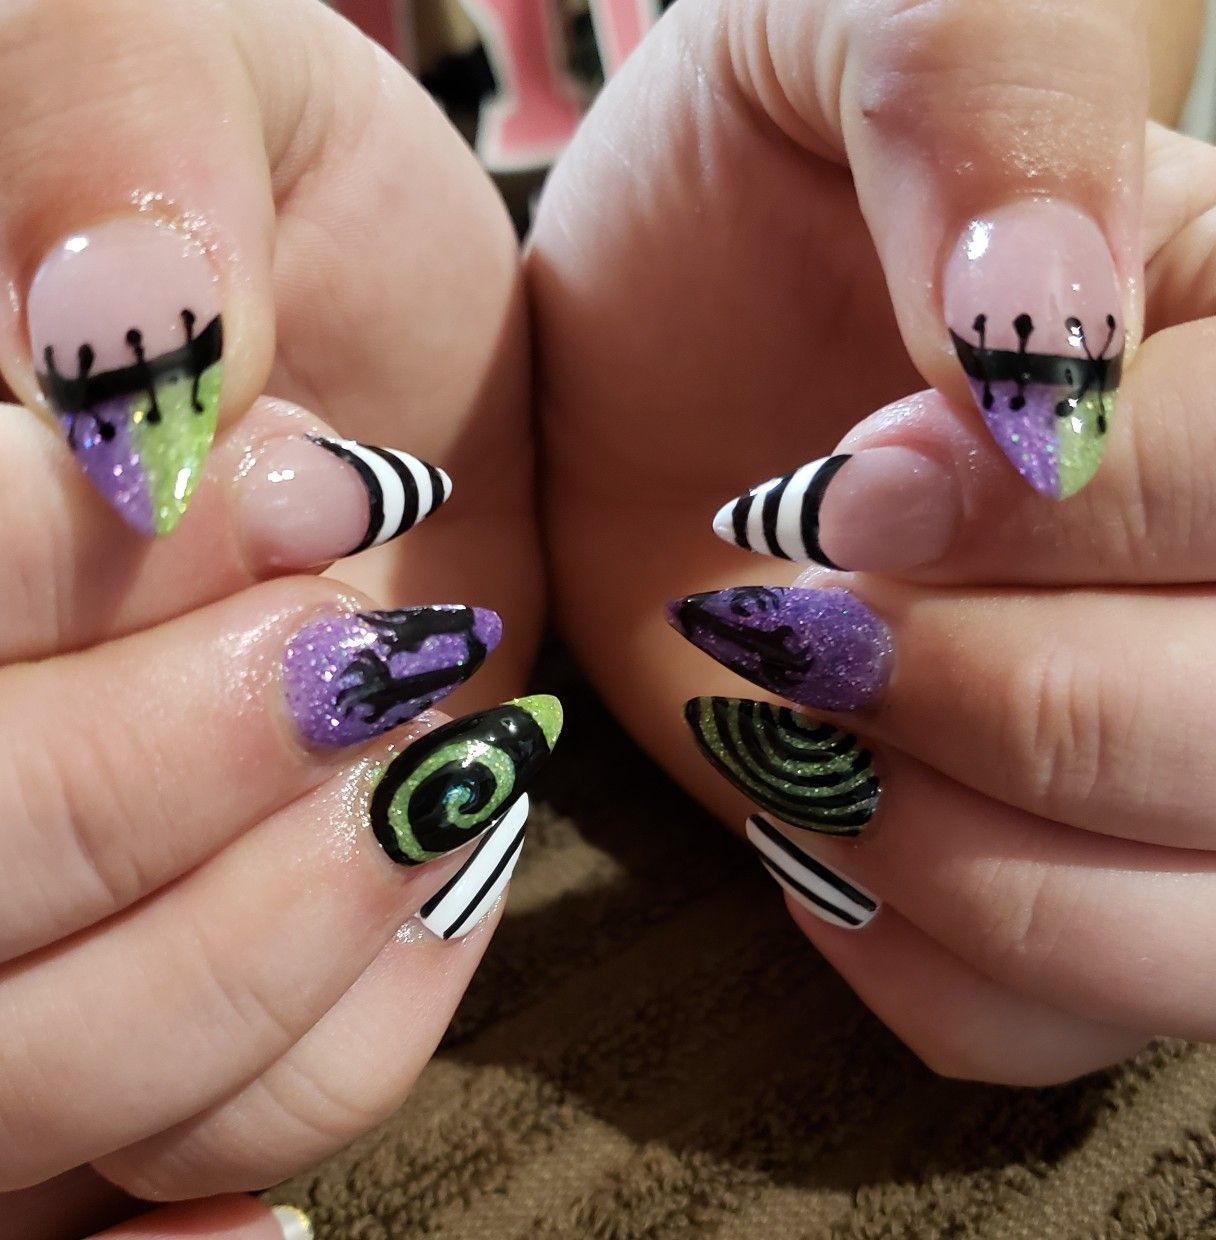 Beetlejuice nails by Lyndell | Halloween nail designs ...